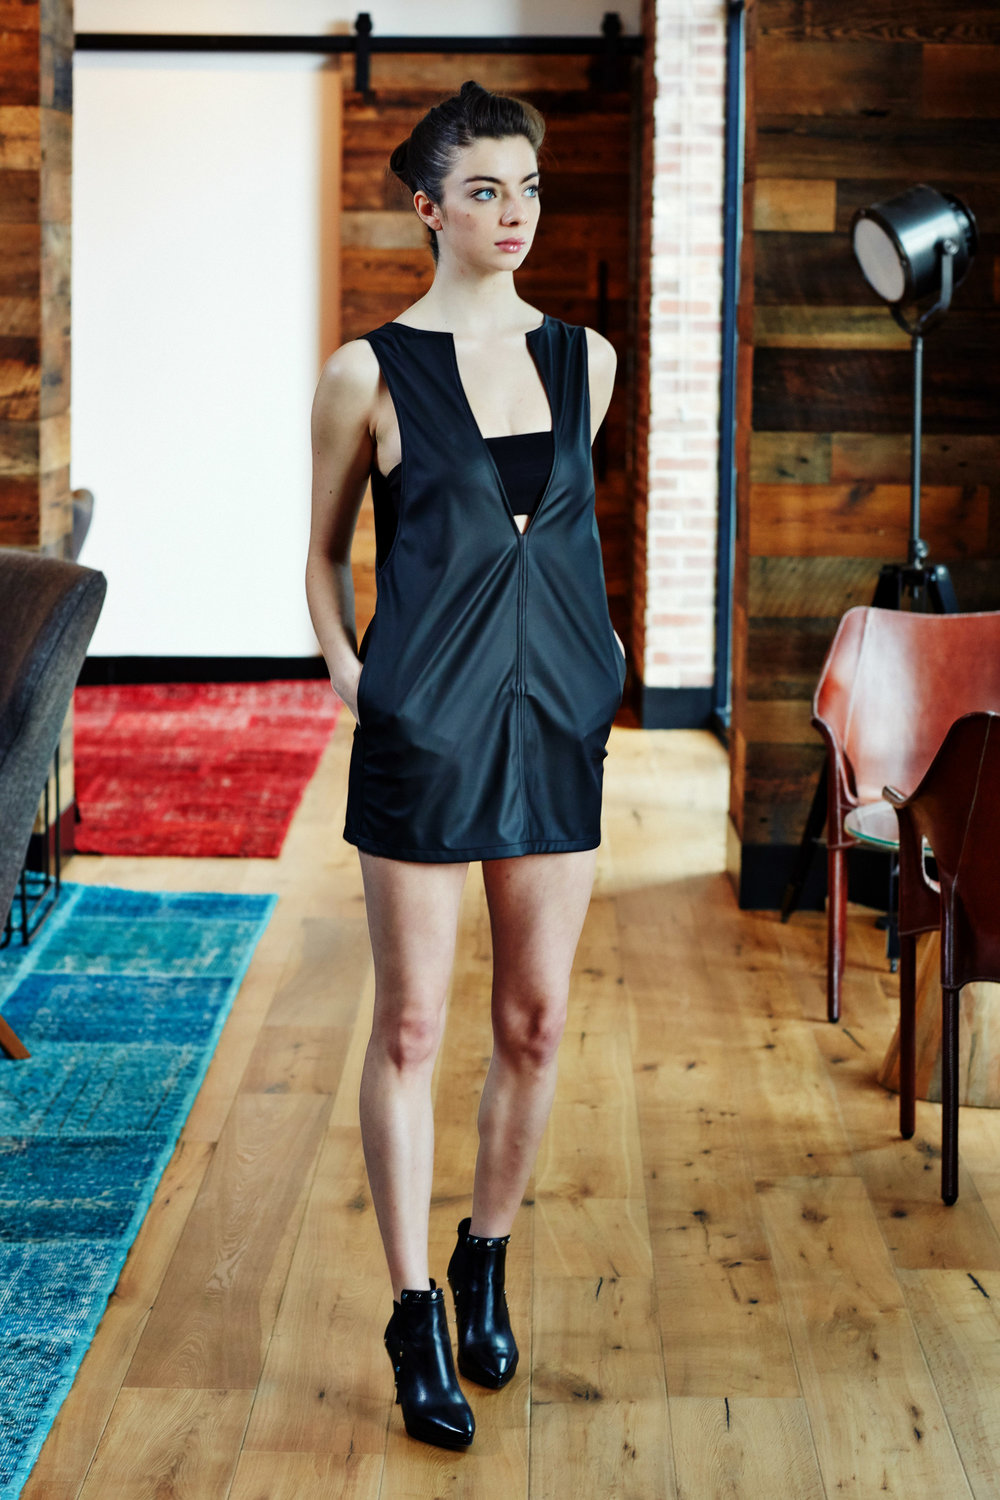 Minika-Ko-Kovasky-Collection-Lookbook-Fashion-Performance-Fabrics-Black-Faux-Leather-Vest-Dress-with-Hidden-Pockets-and-Black-Bandeau-Athleisure-Style.jpg